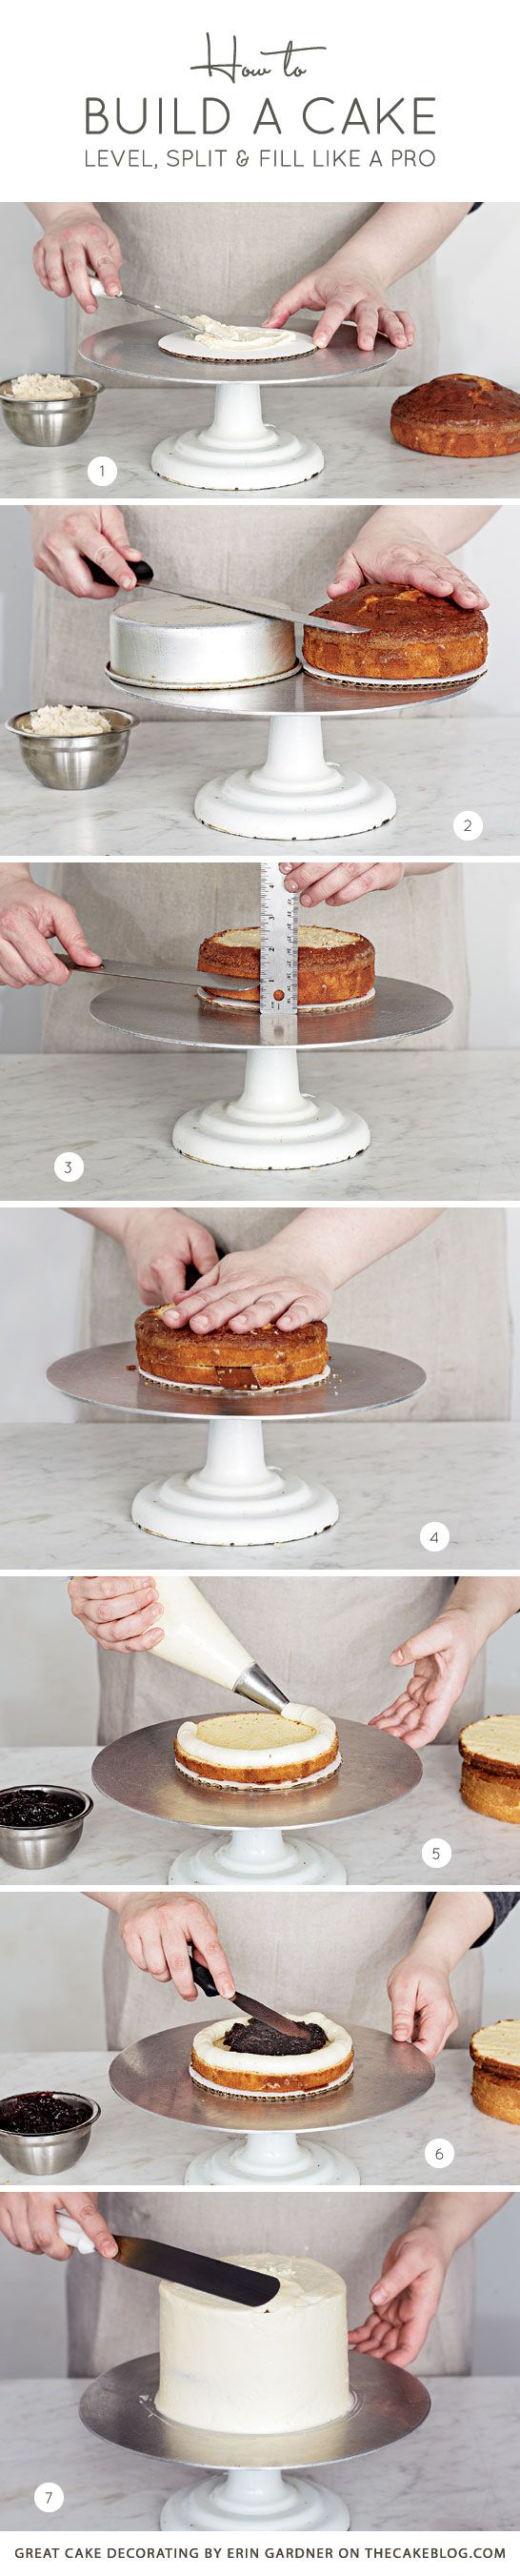 How to Build a Cake ~ Level, split and fill like a pro | Great Cake Decorating by Erin Gardner on TheCakeBlog.com #diy #howto #tutorial